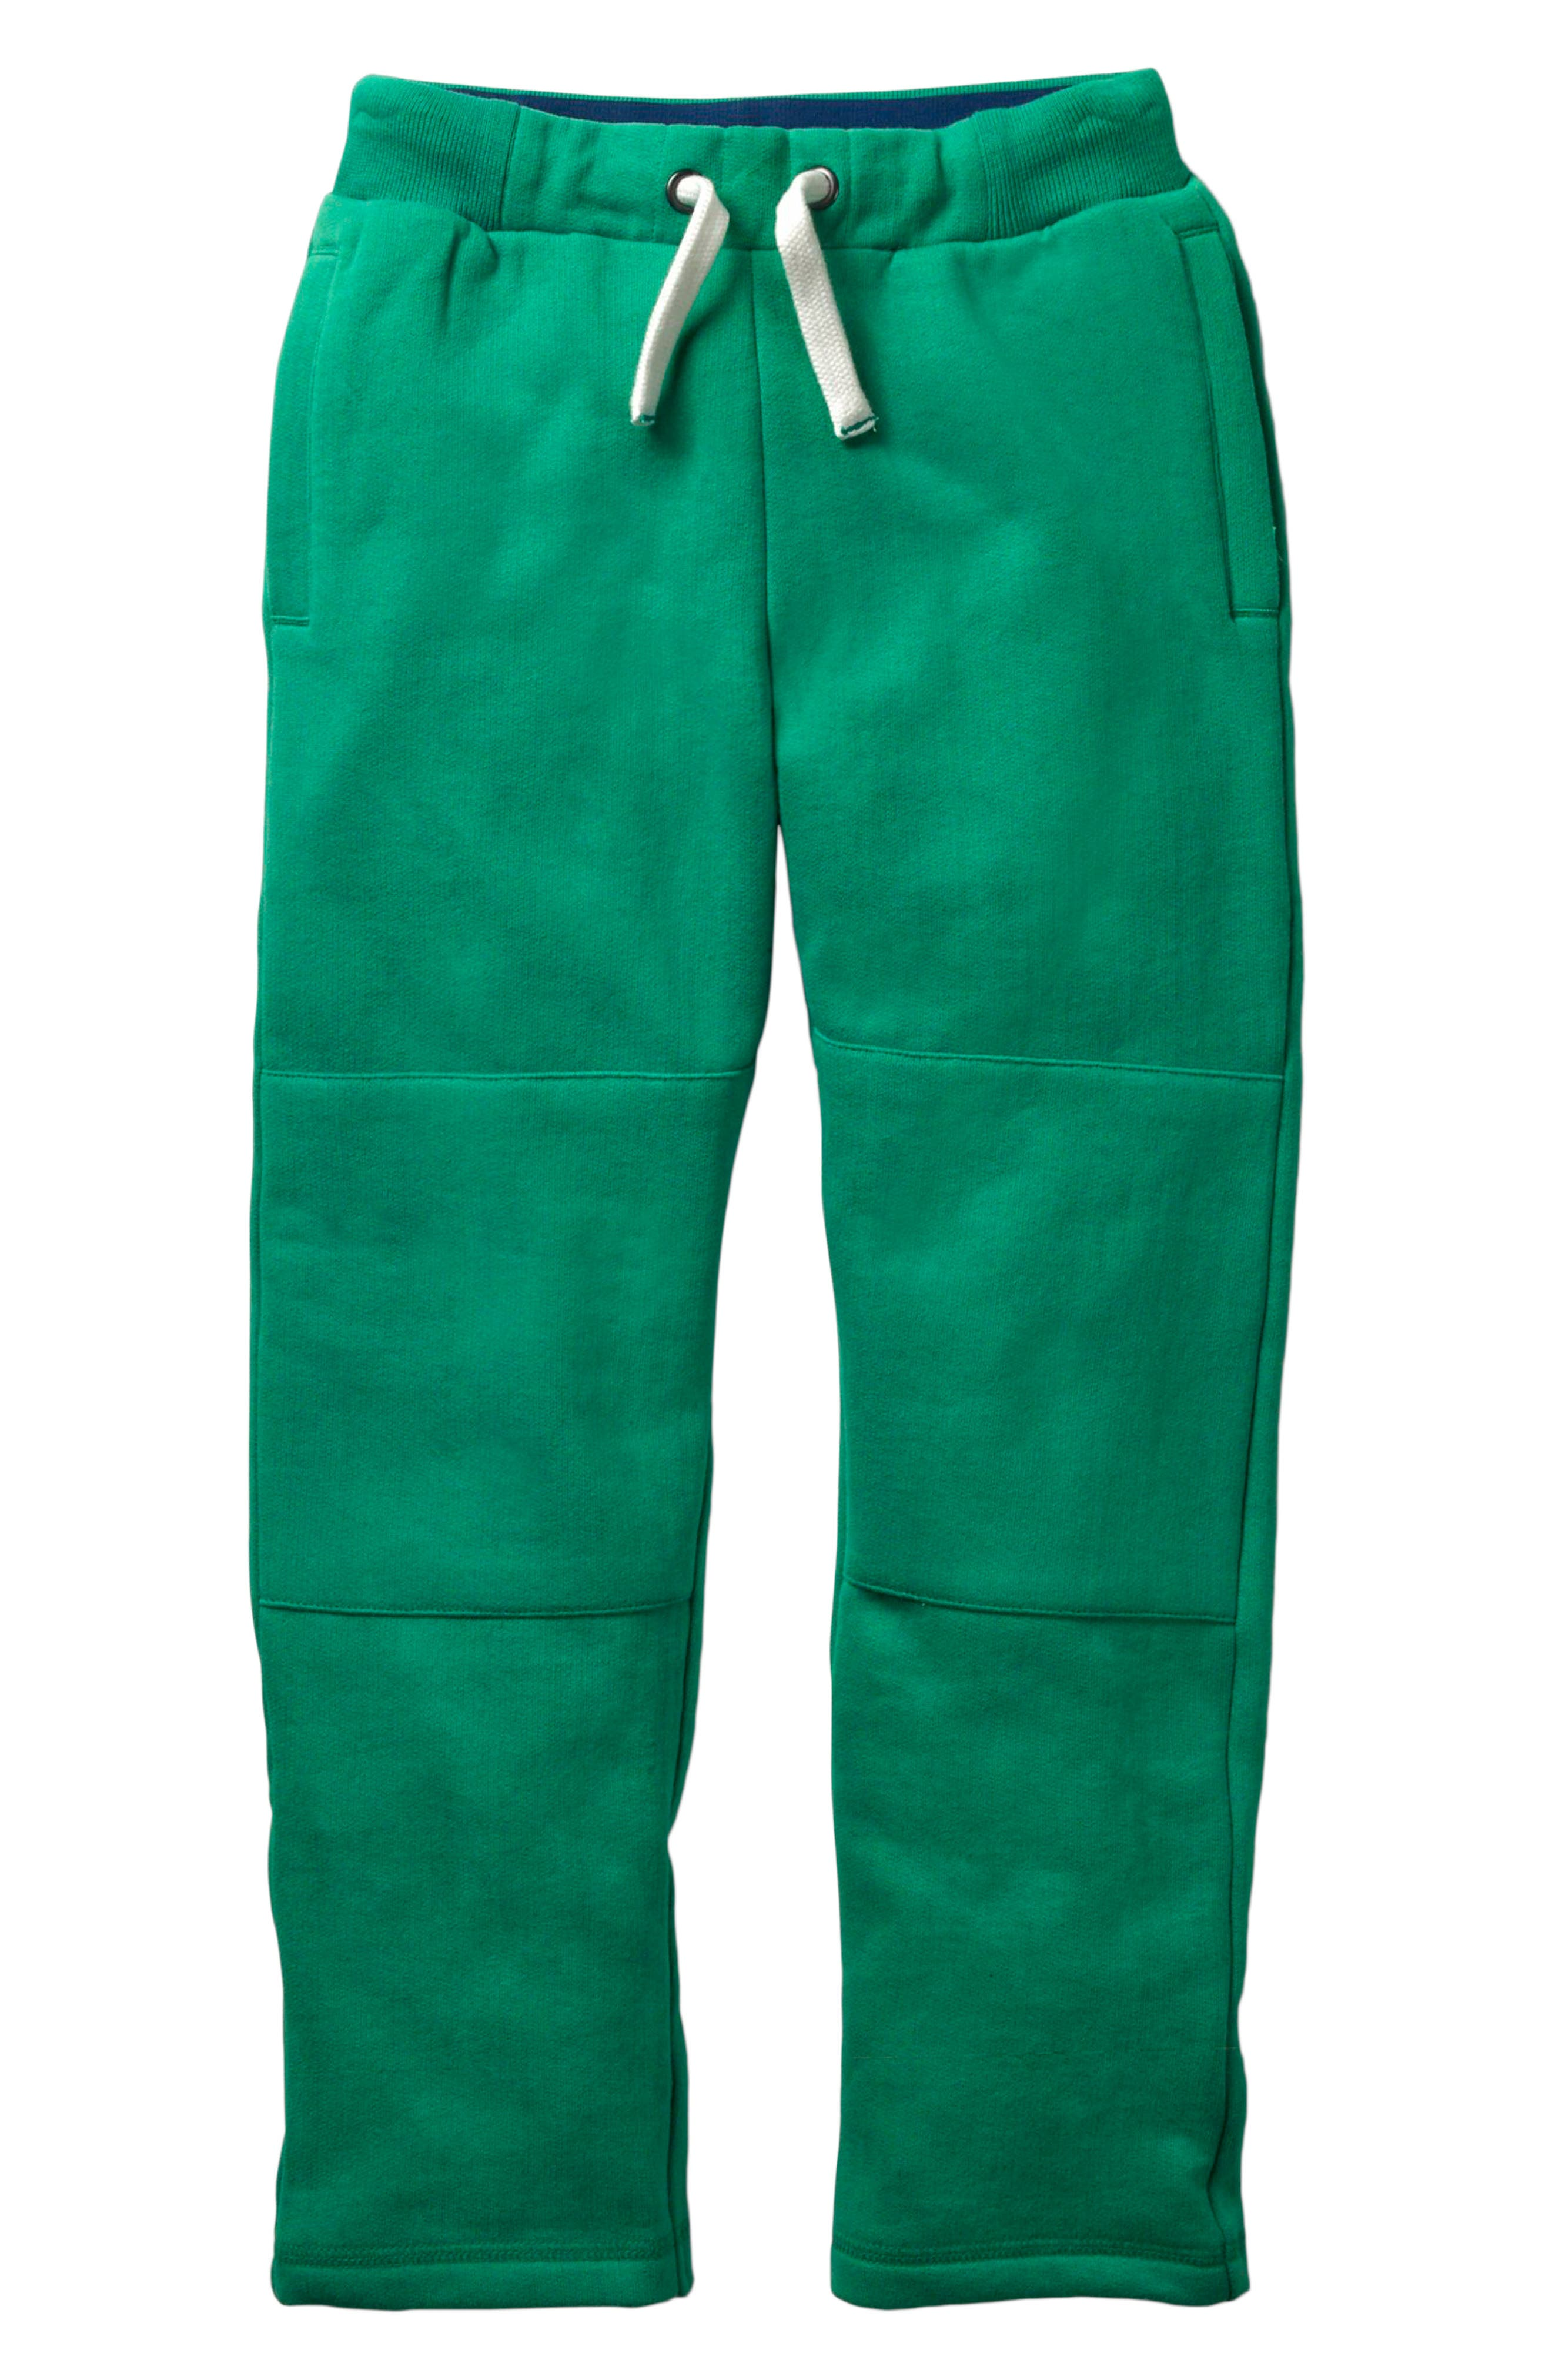 Warrior Knee Sweatpants,                         Main,                         color, 315